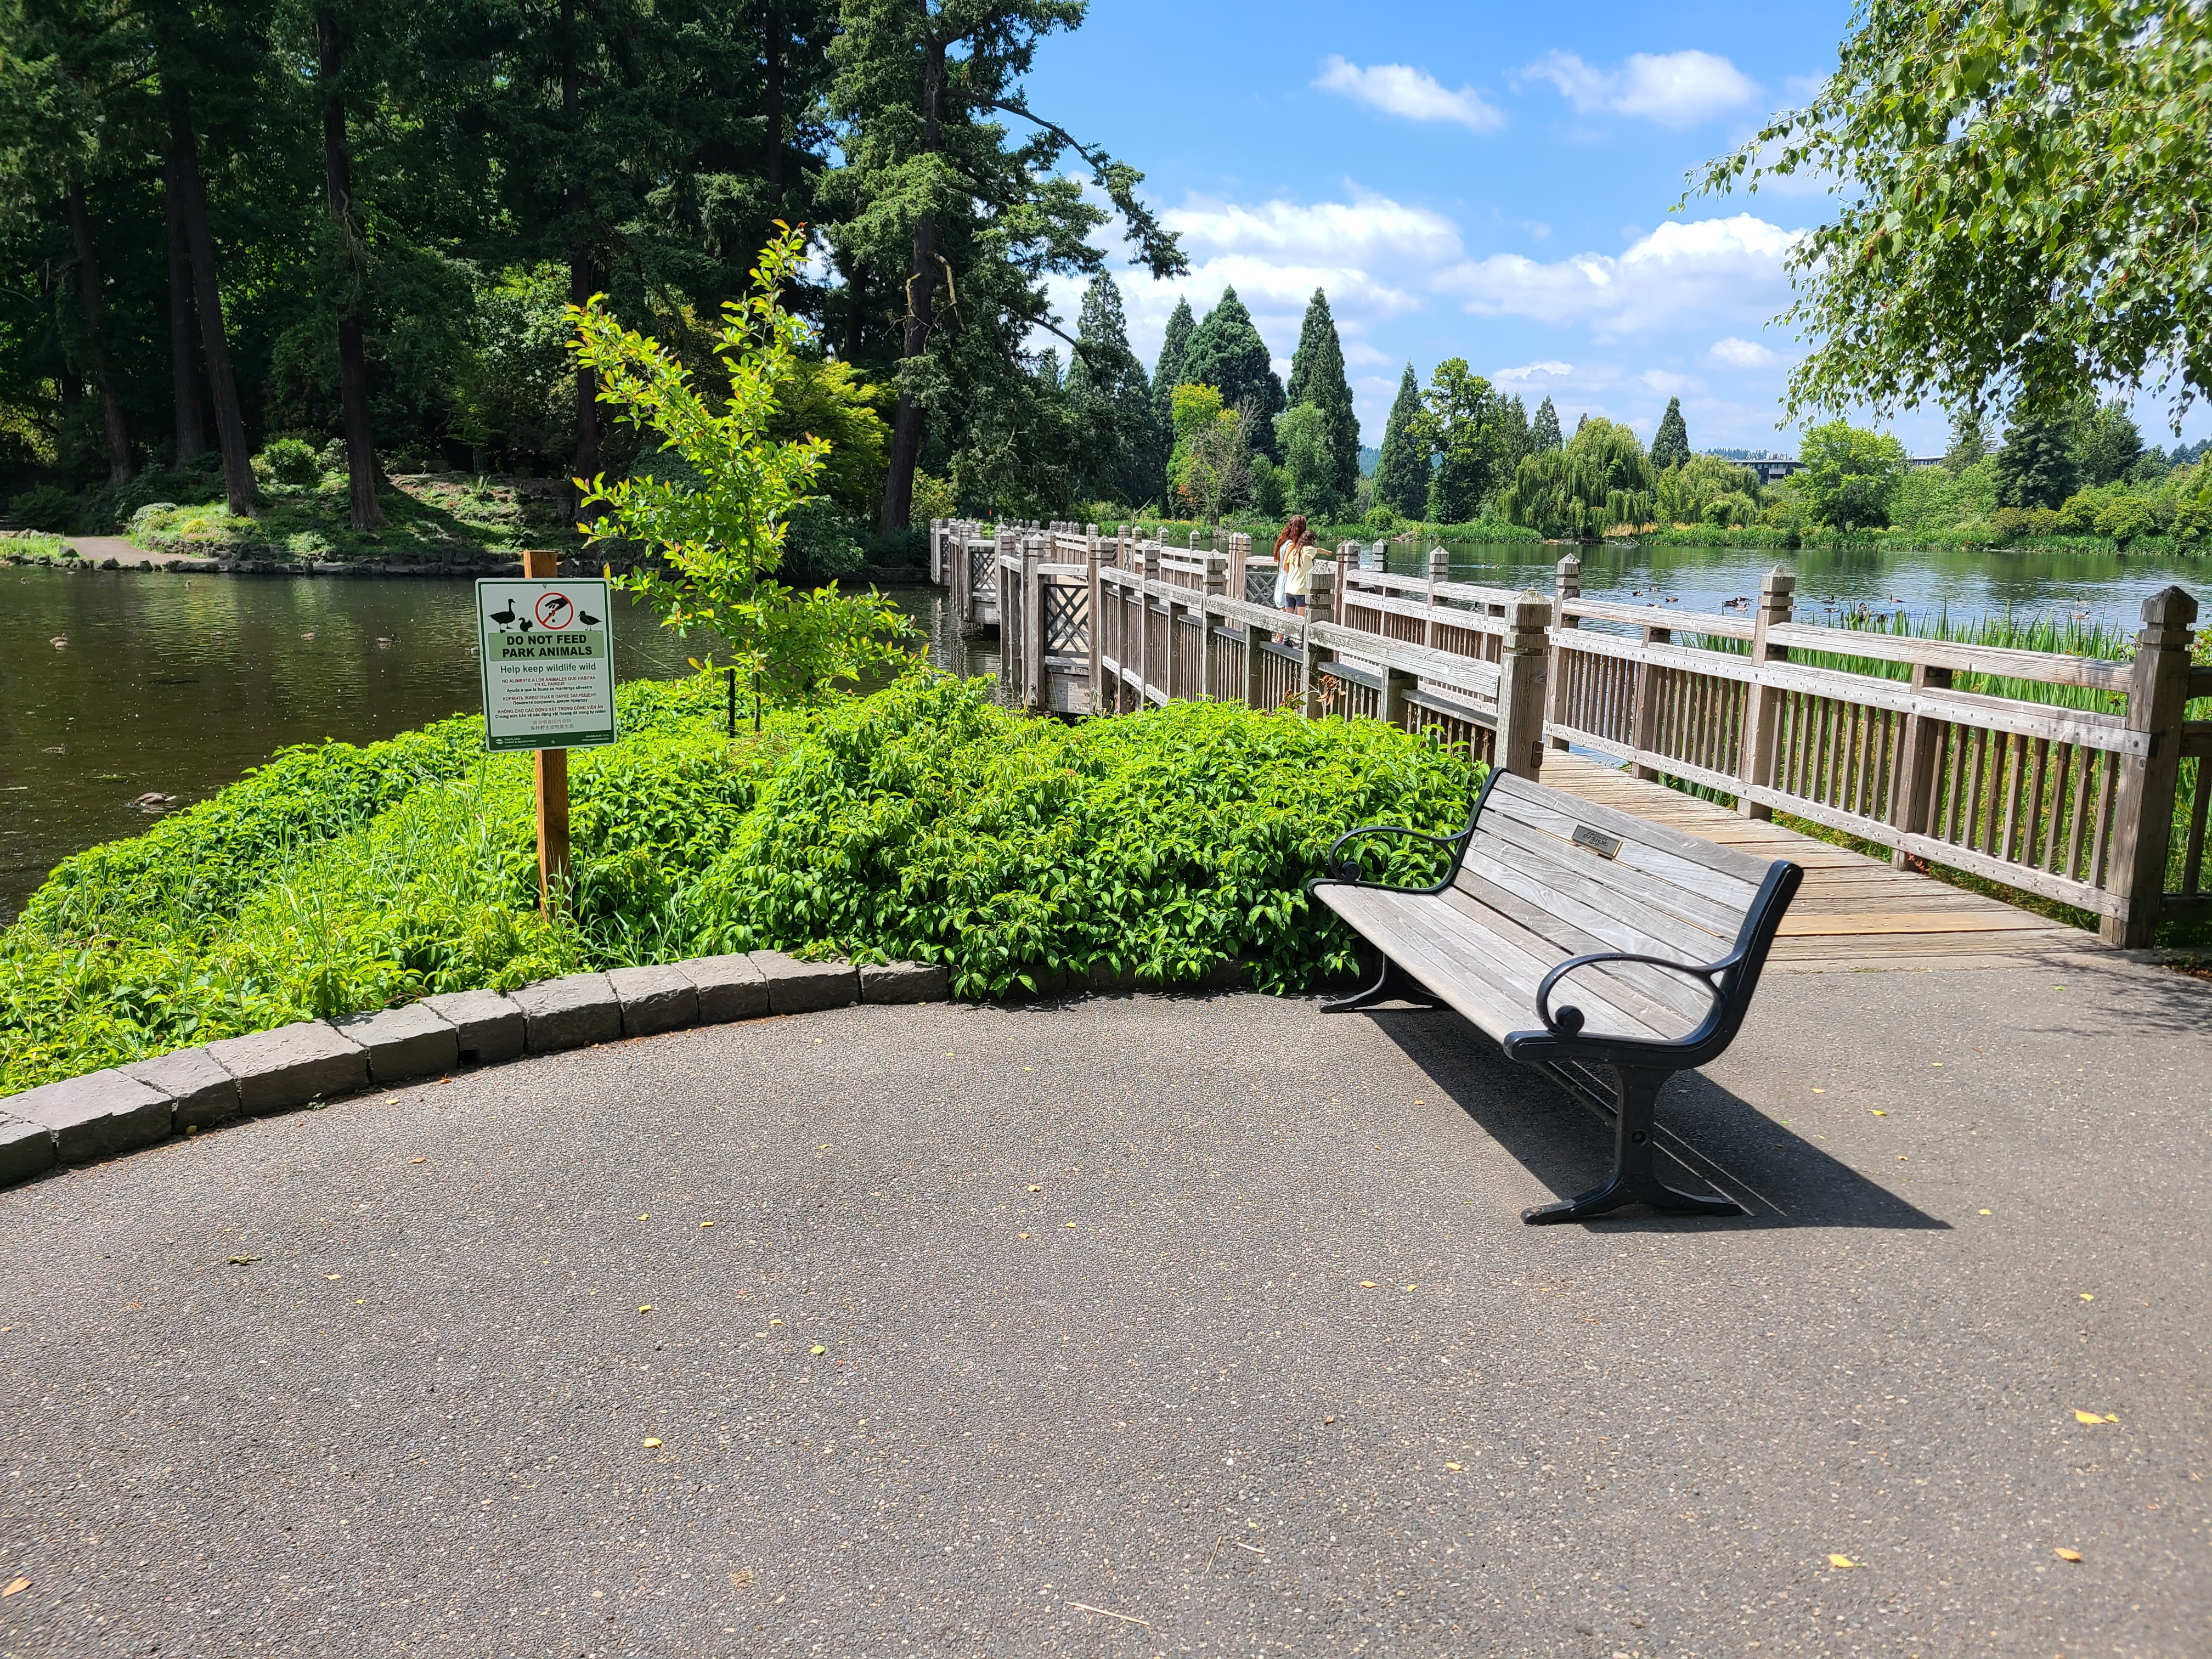 A bench on a paved area next to a bridge over a lake.